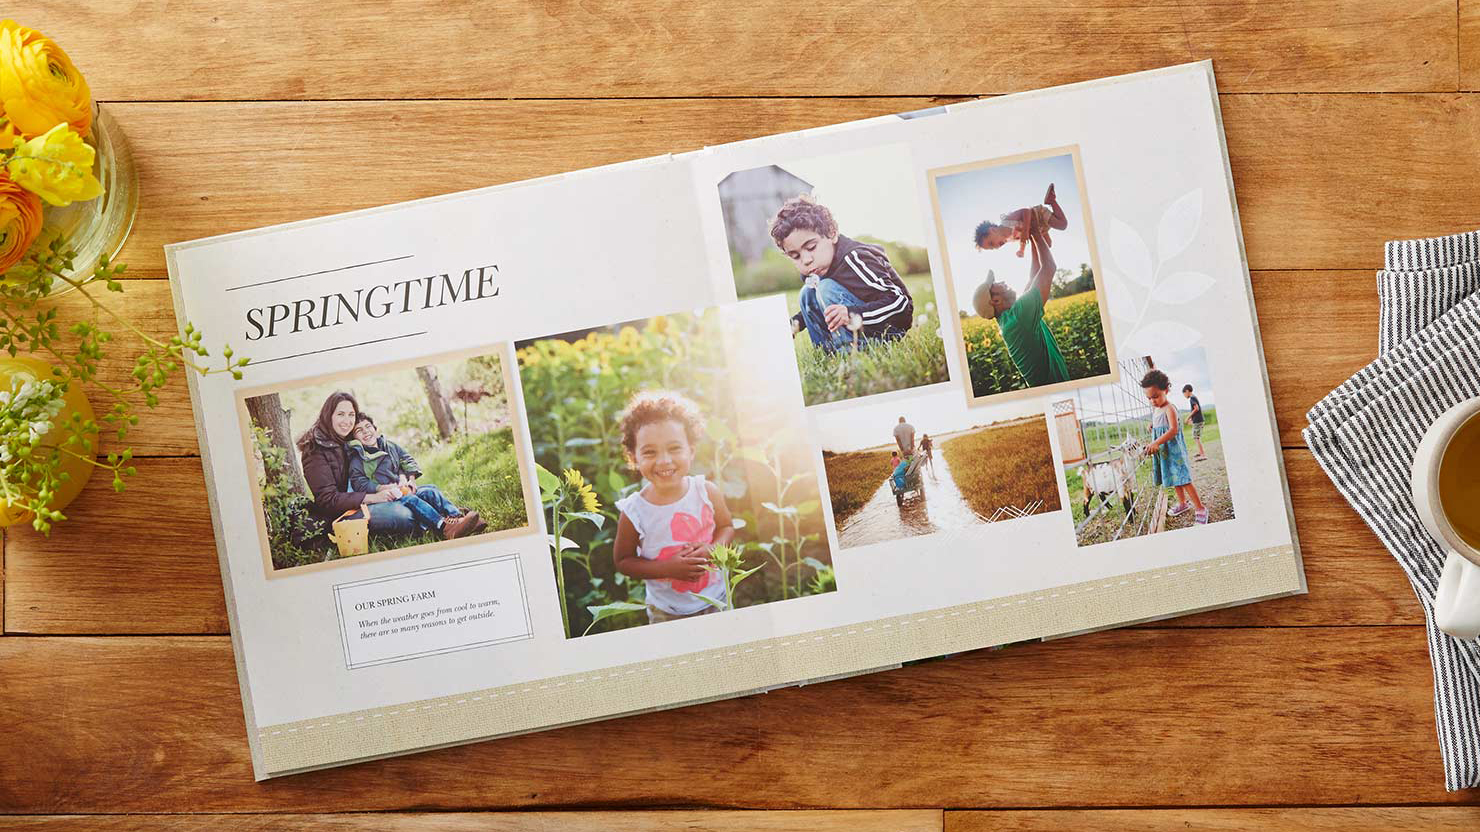 A photo book from Shutterfly